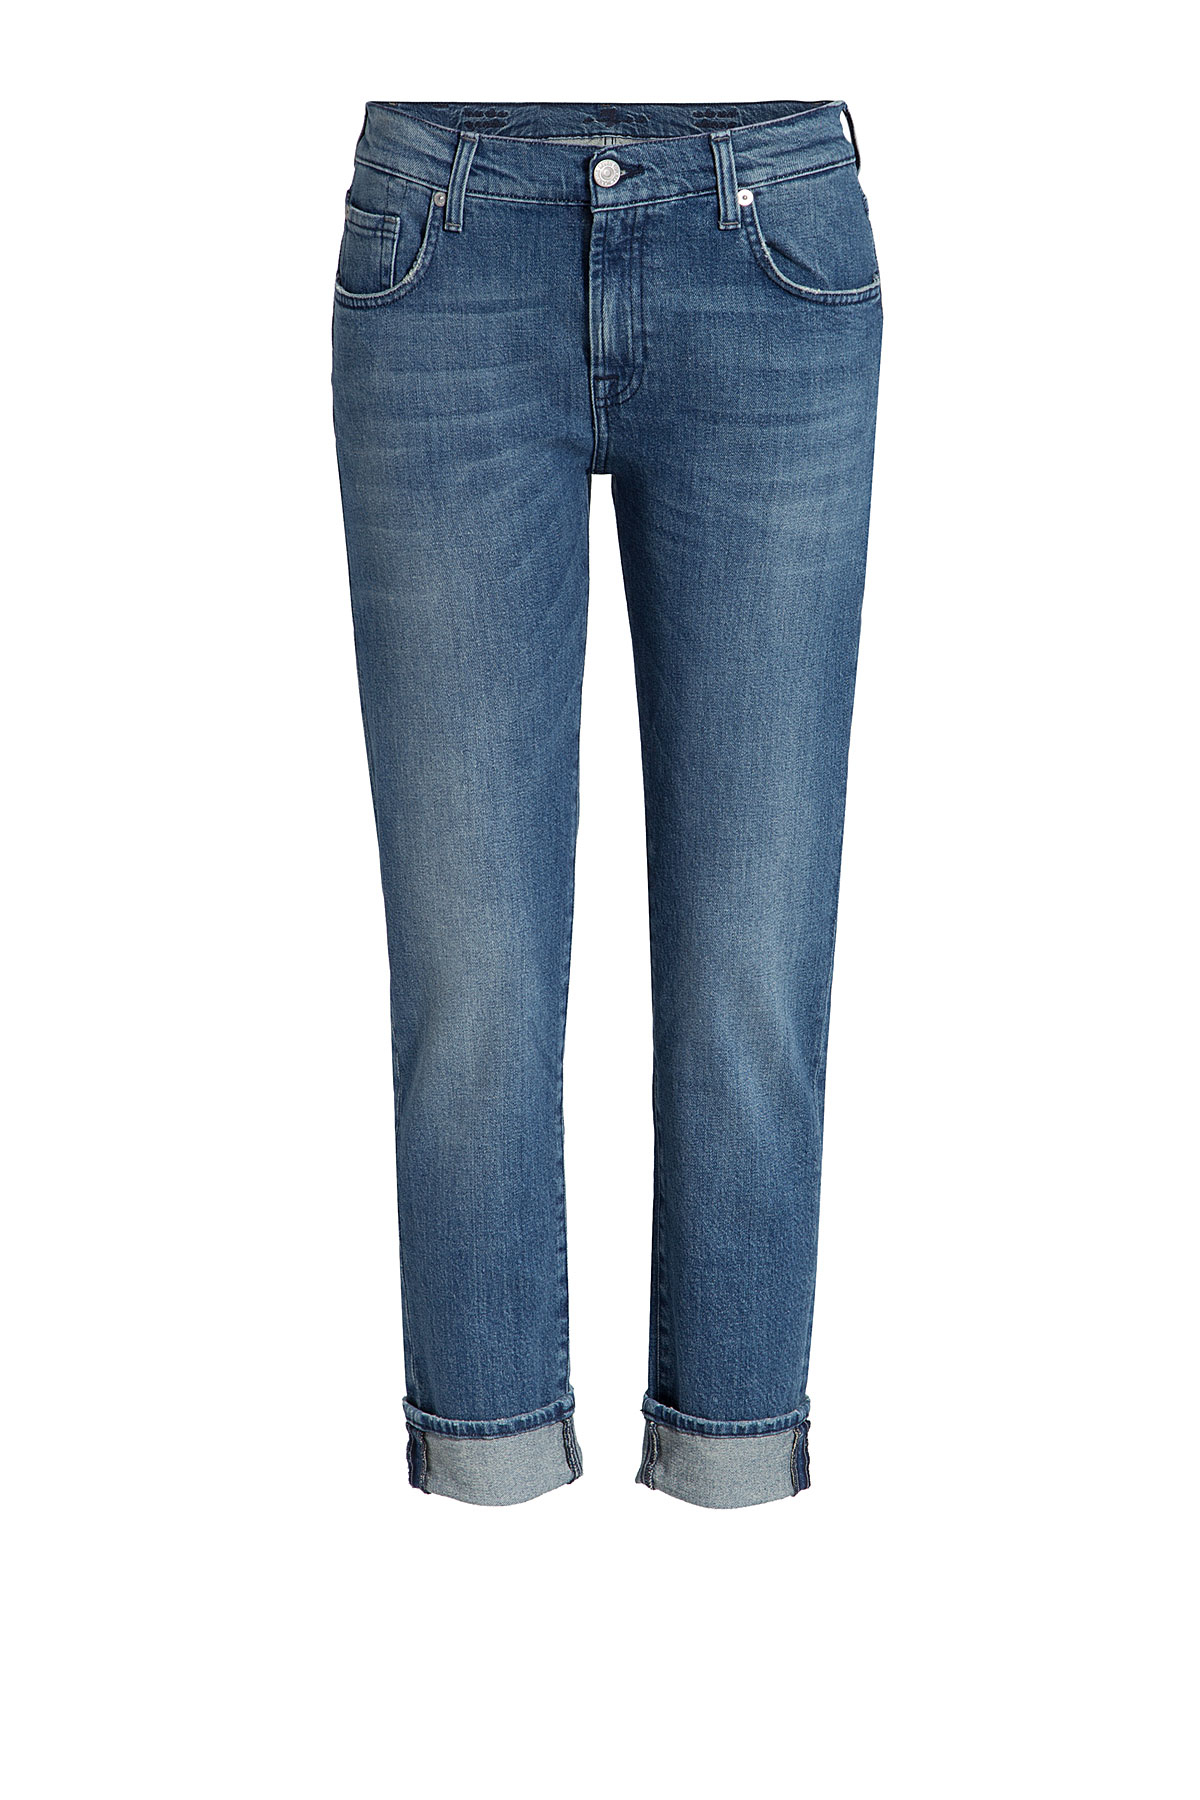 for all mankind cropped jeans blue in blue lyst. Black Bedroom Furniture Sets. Home Design Ideas